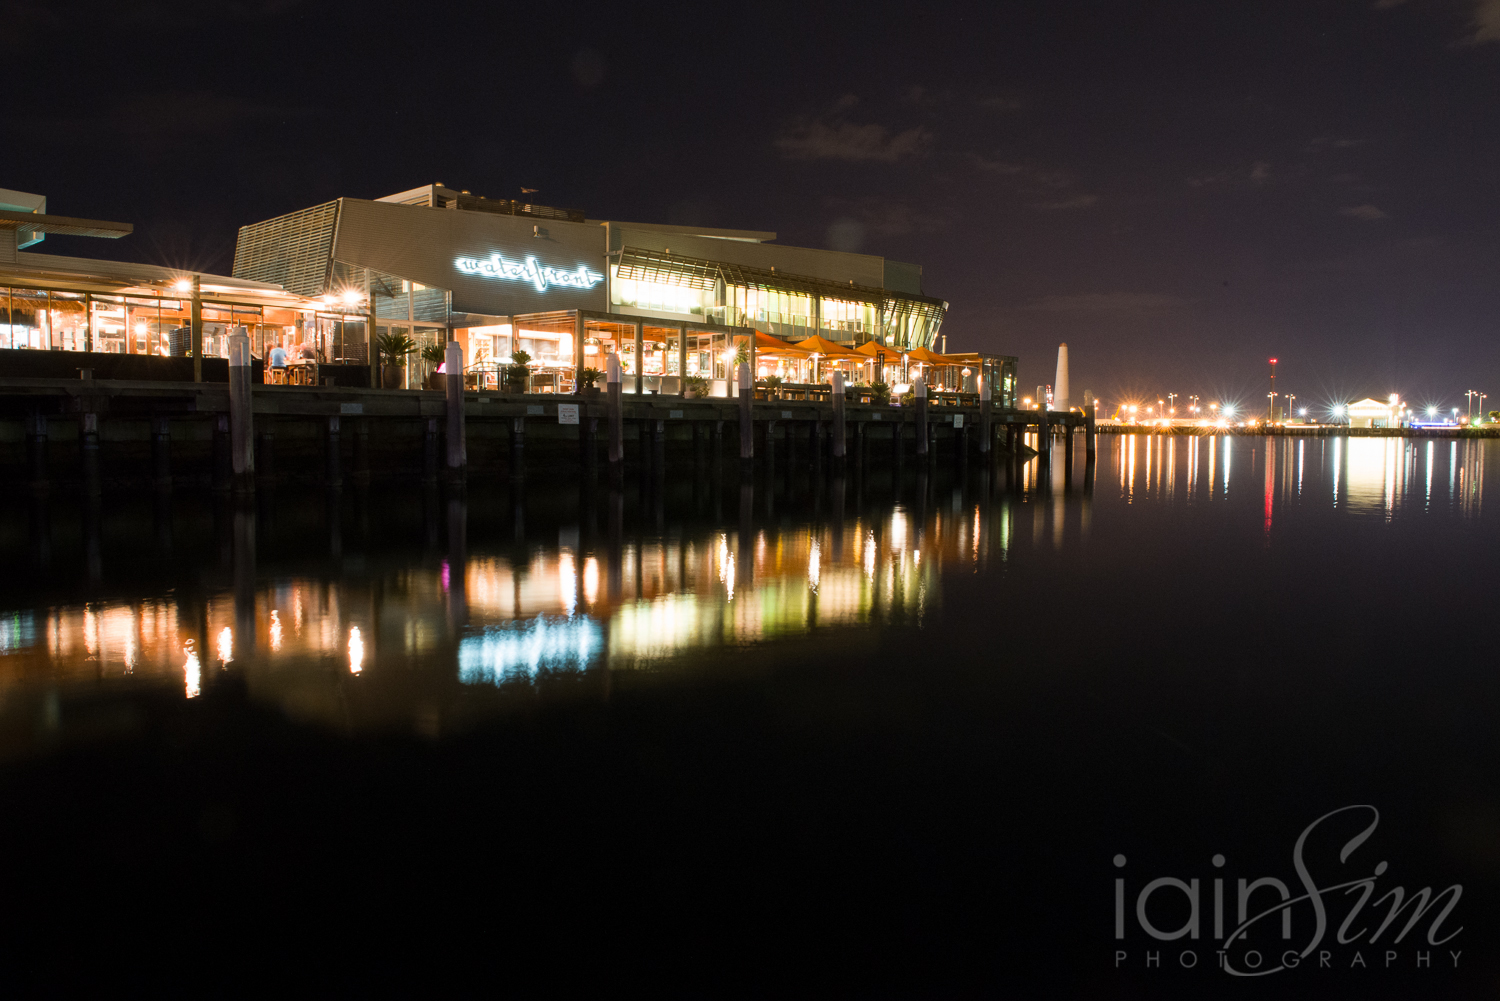 wpid-Justine-and-Steve-at-Waterfront-Port-Melbourne-by-Iain-Sim-Photography_029.jpg